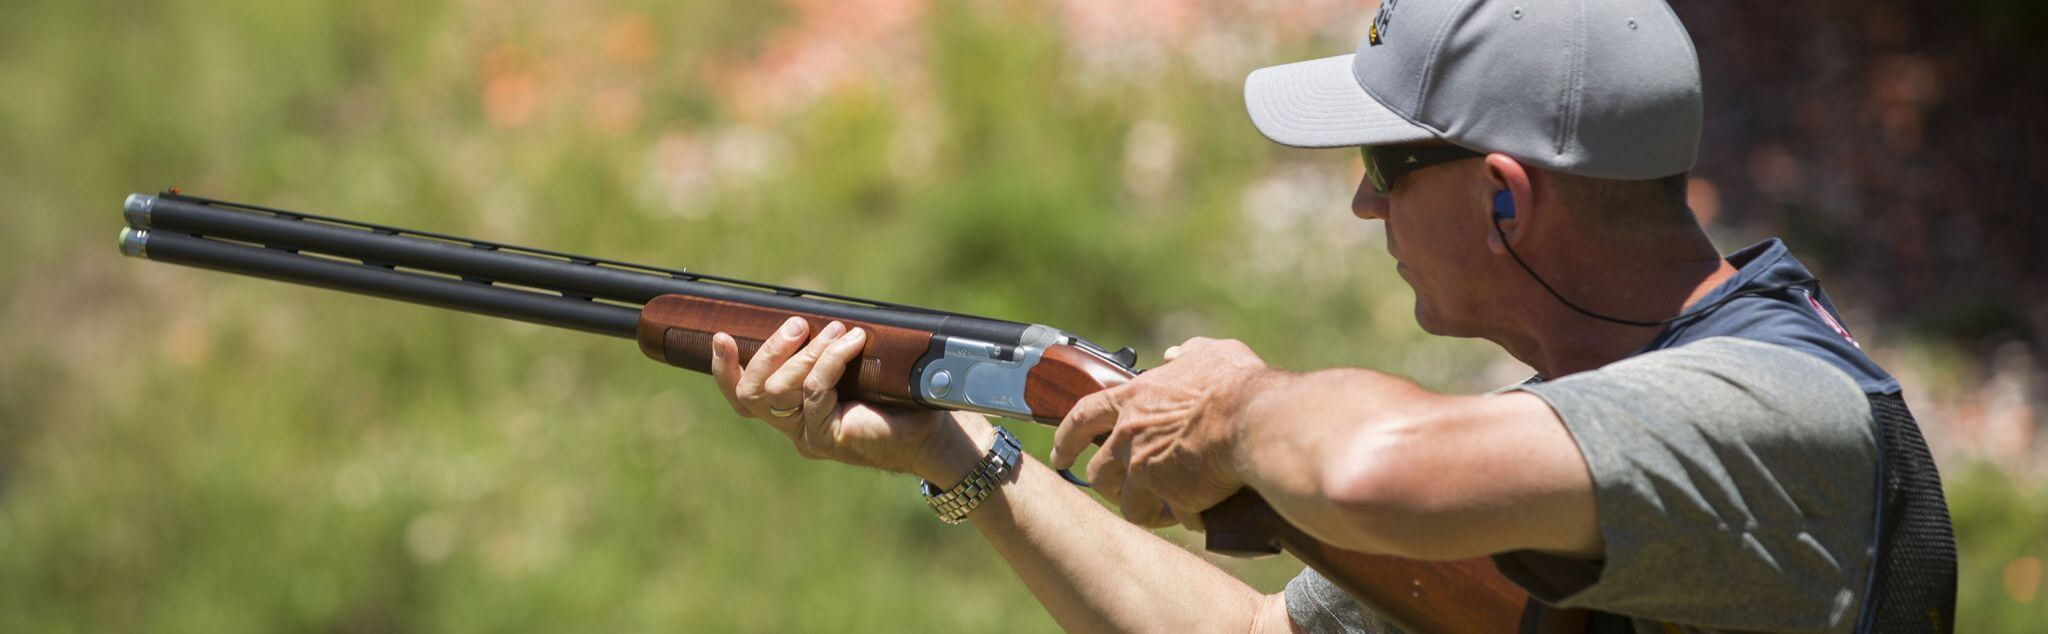 Clay Pigeon Shooting in Shropshire